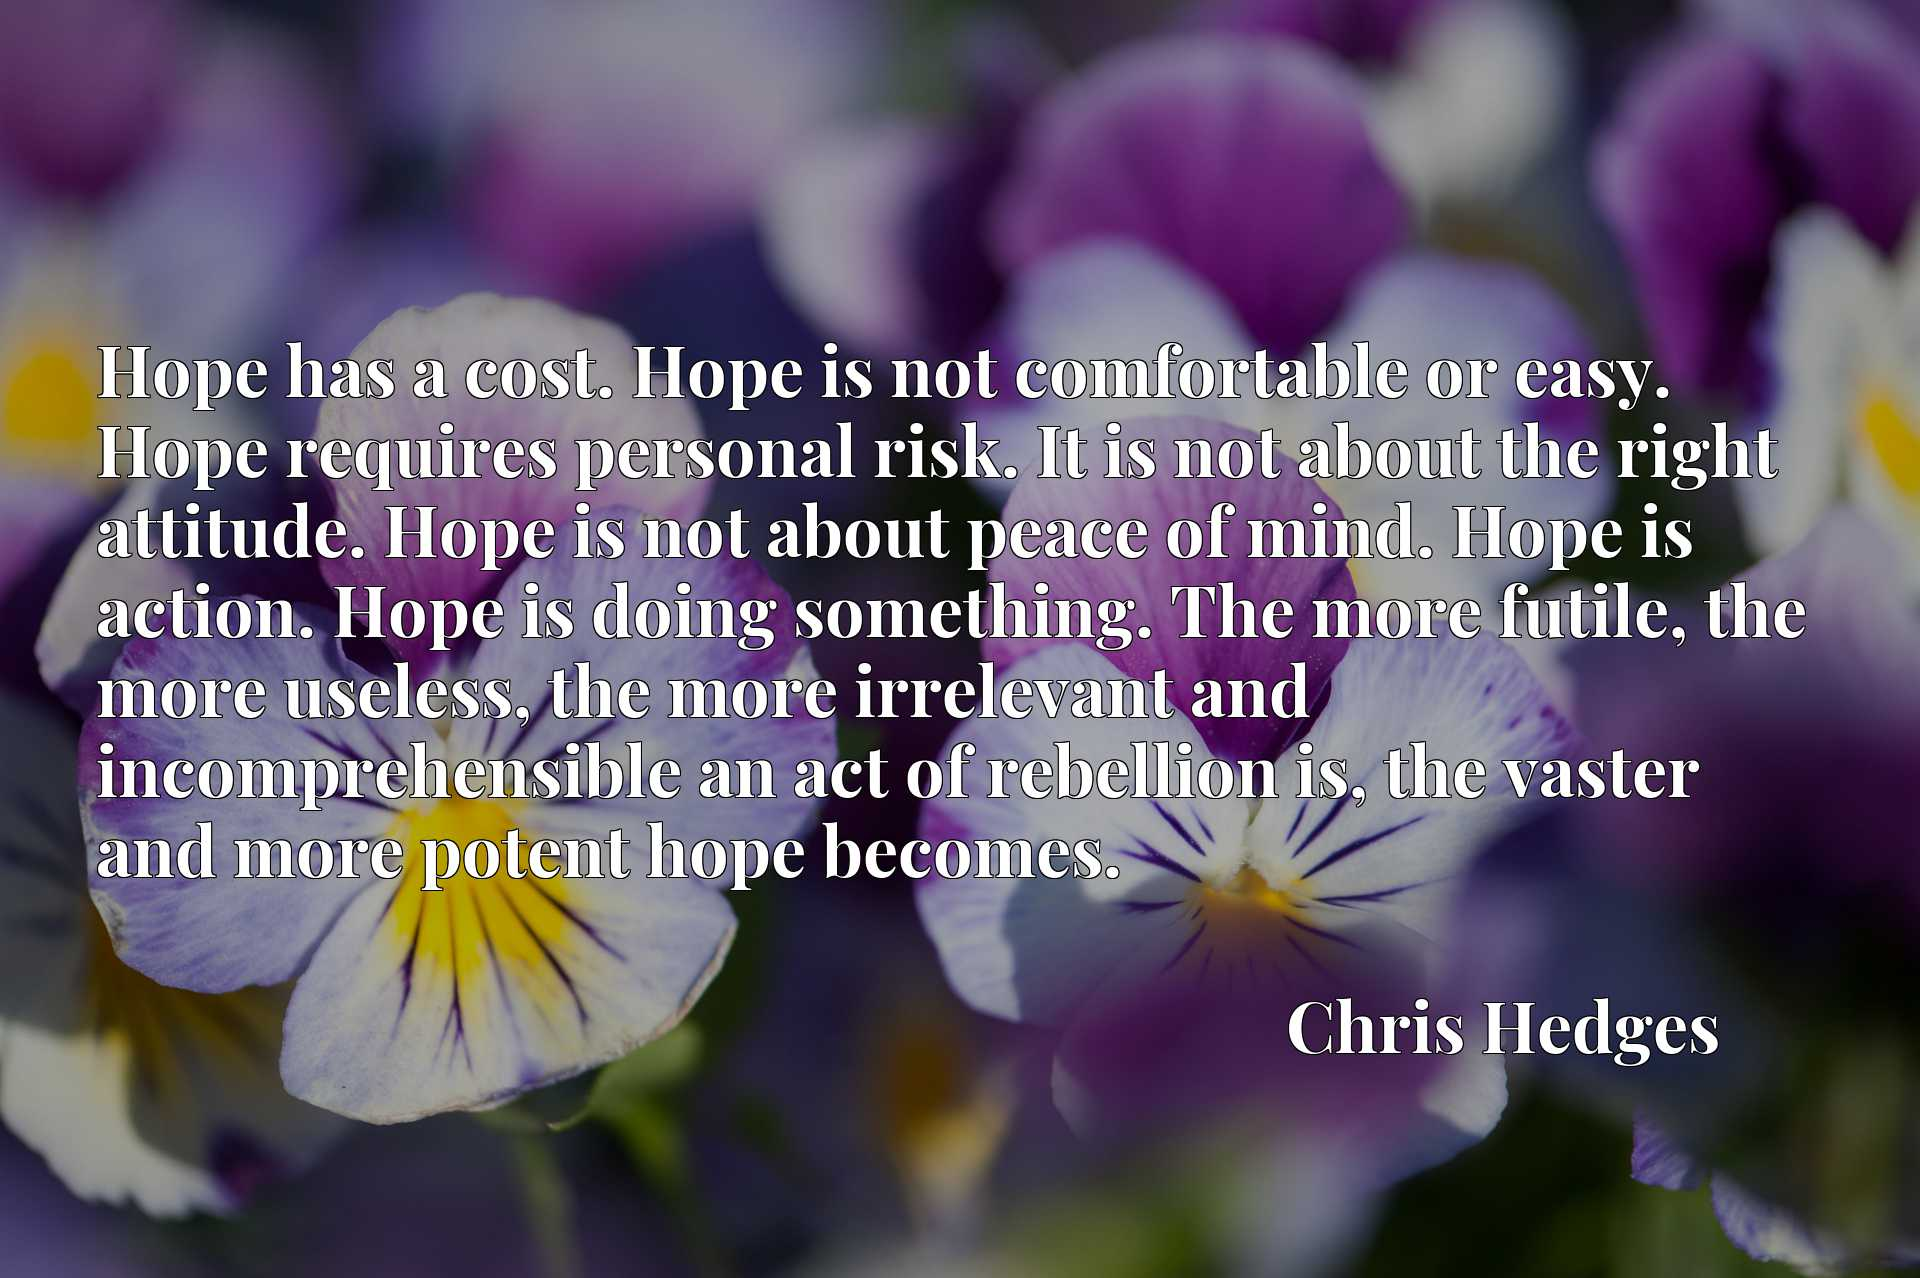 Hope has a cost. Hope is not comfortable or easy. Hope requires personal risk. It is not about the right attitude. Hope is not about peace of mind. Hope is action. Hope is doing something. The more futile, the more useless, the more irrelevant and incomprehensible an act of rebellion is, the vaster and more potent hope becomes.